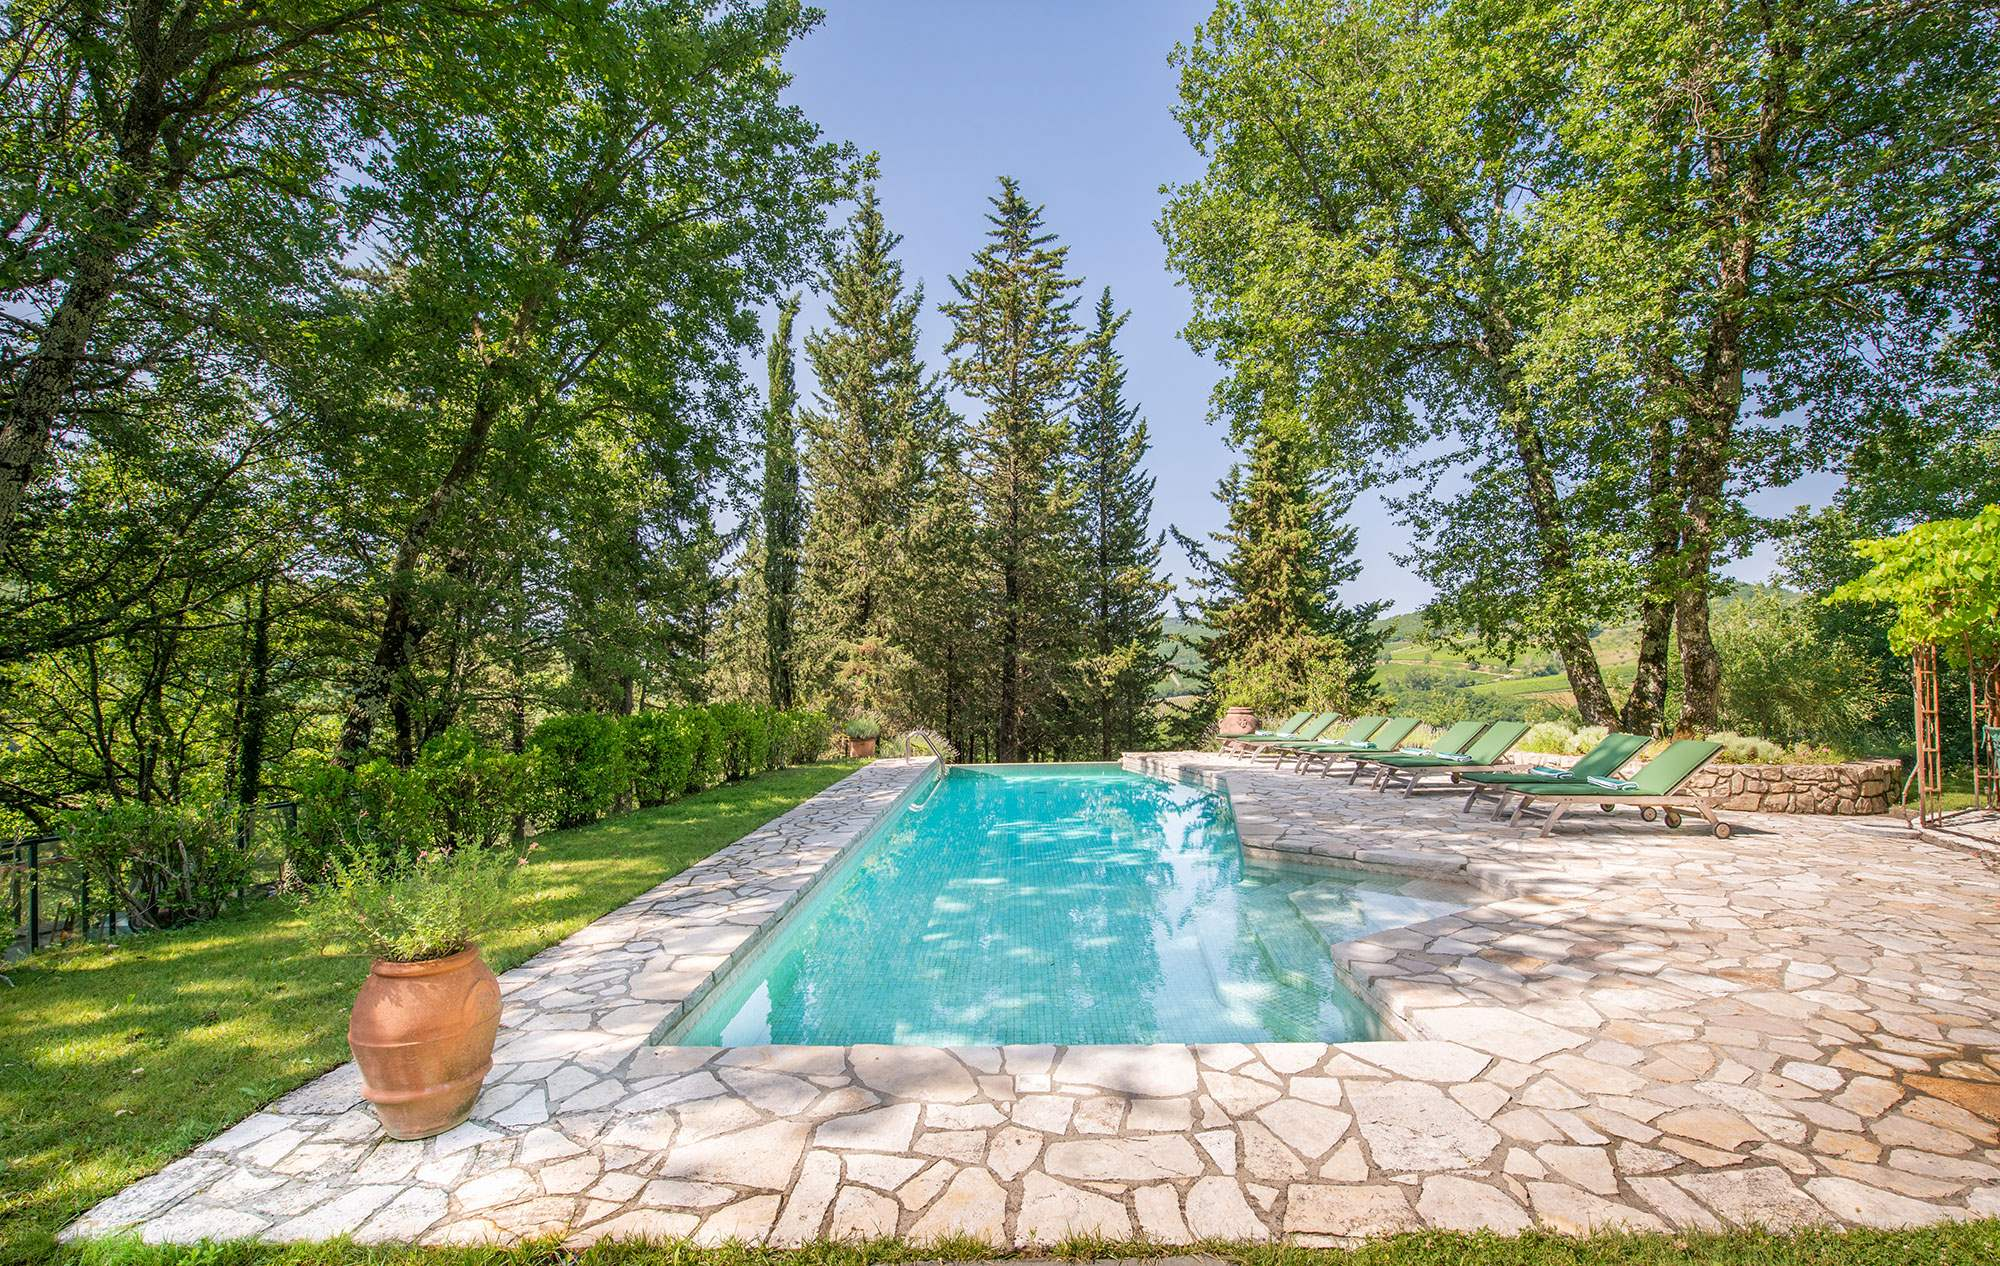 Villa Claudia, 6 Bedroom rate, 6 bedroom villa in Chianti & Countryside, Tuscany Photo #1